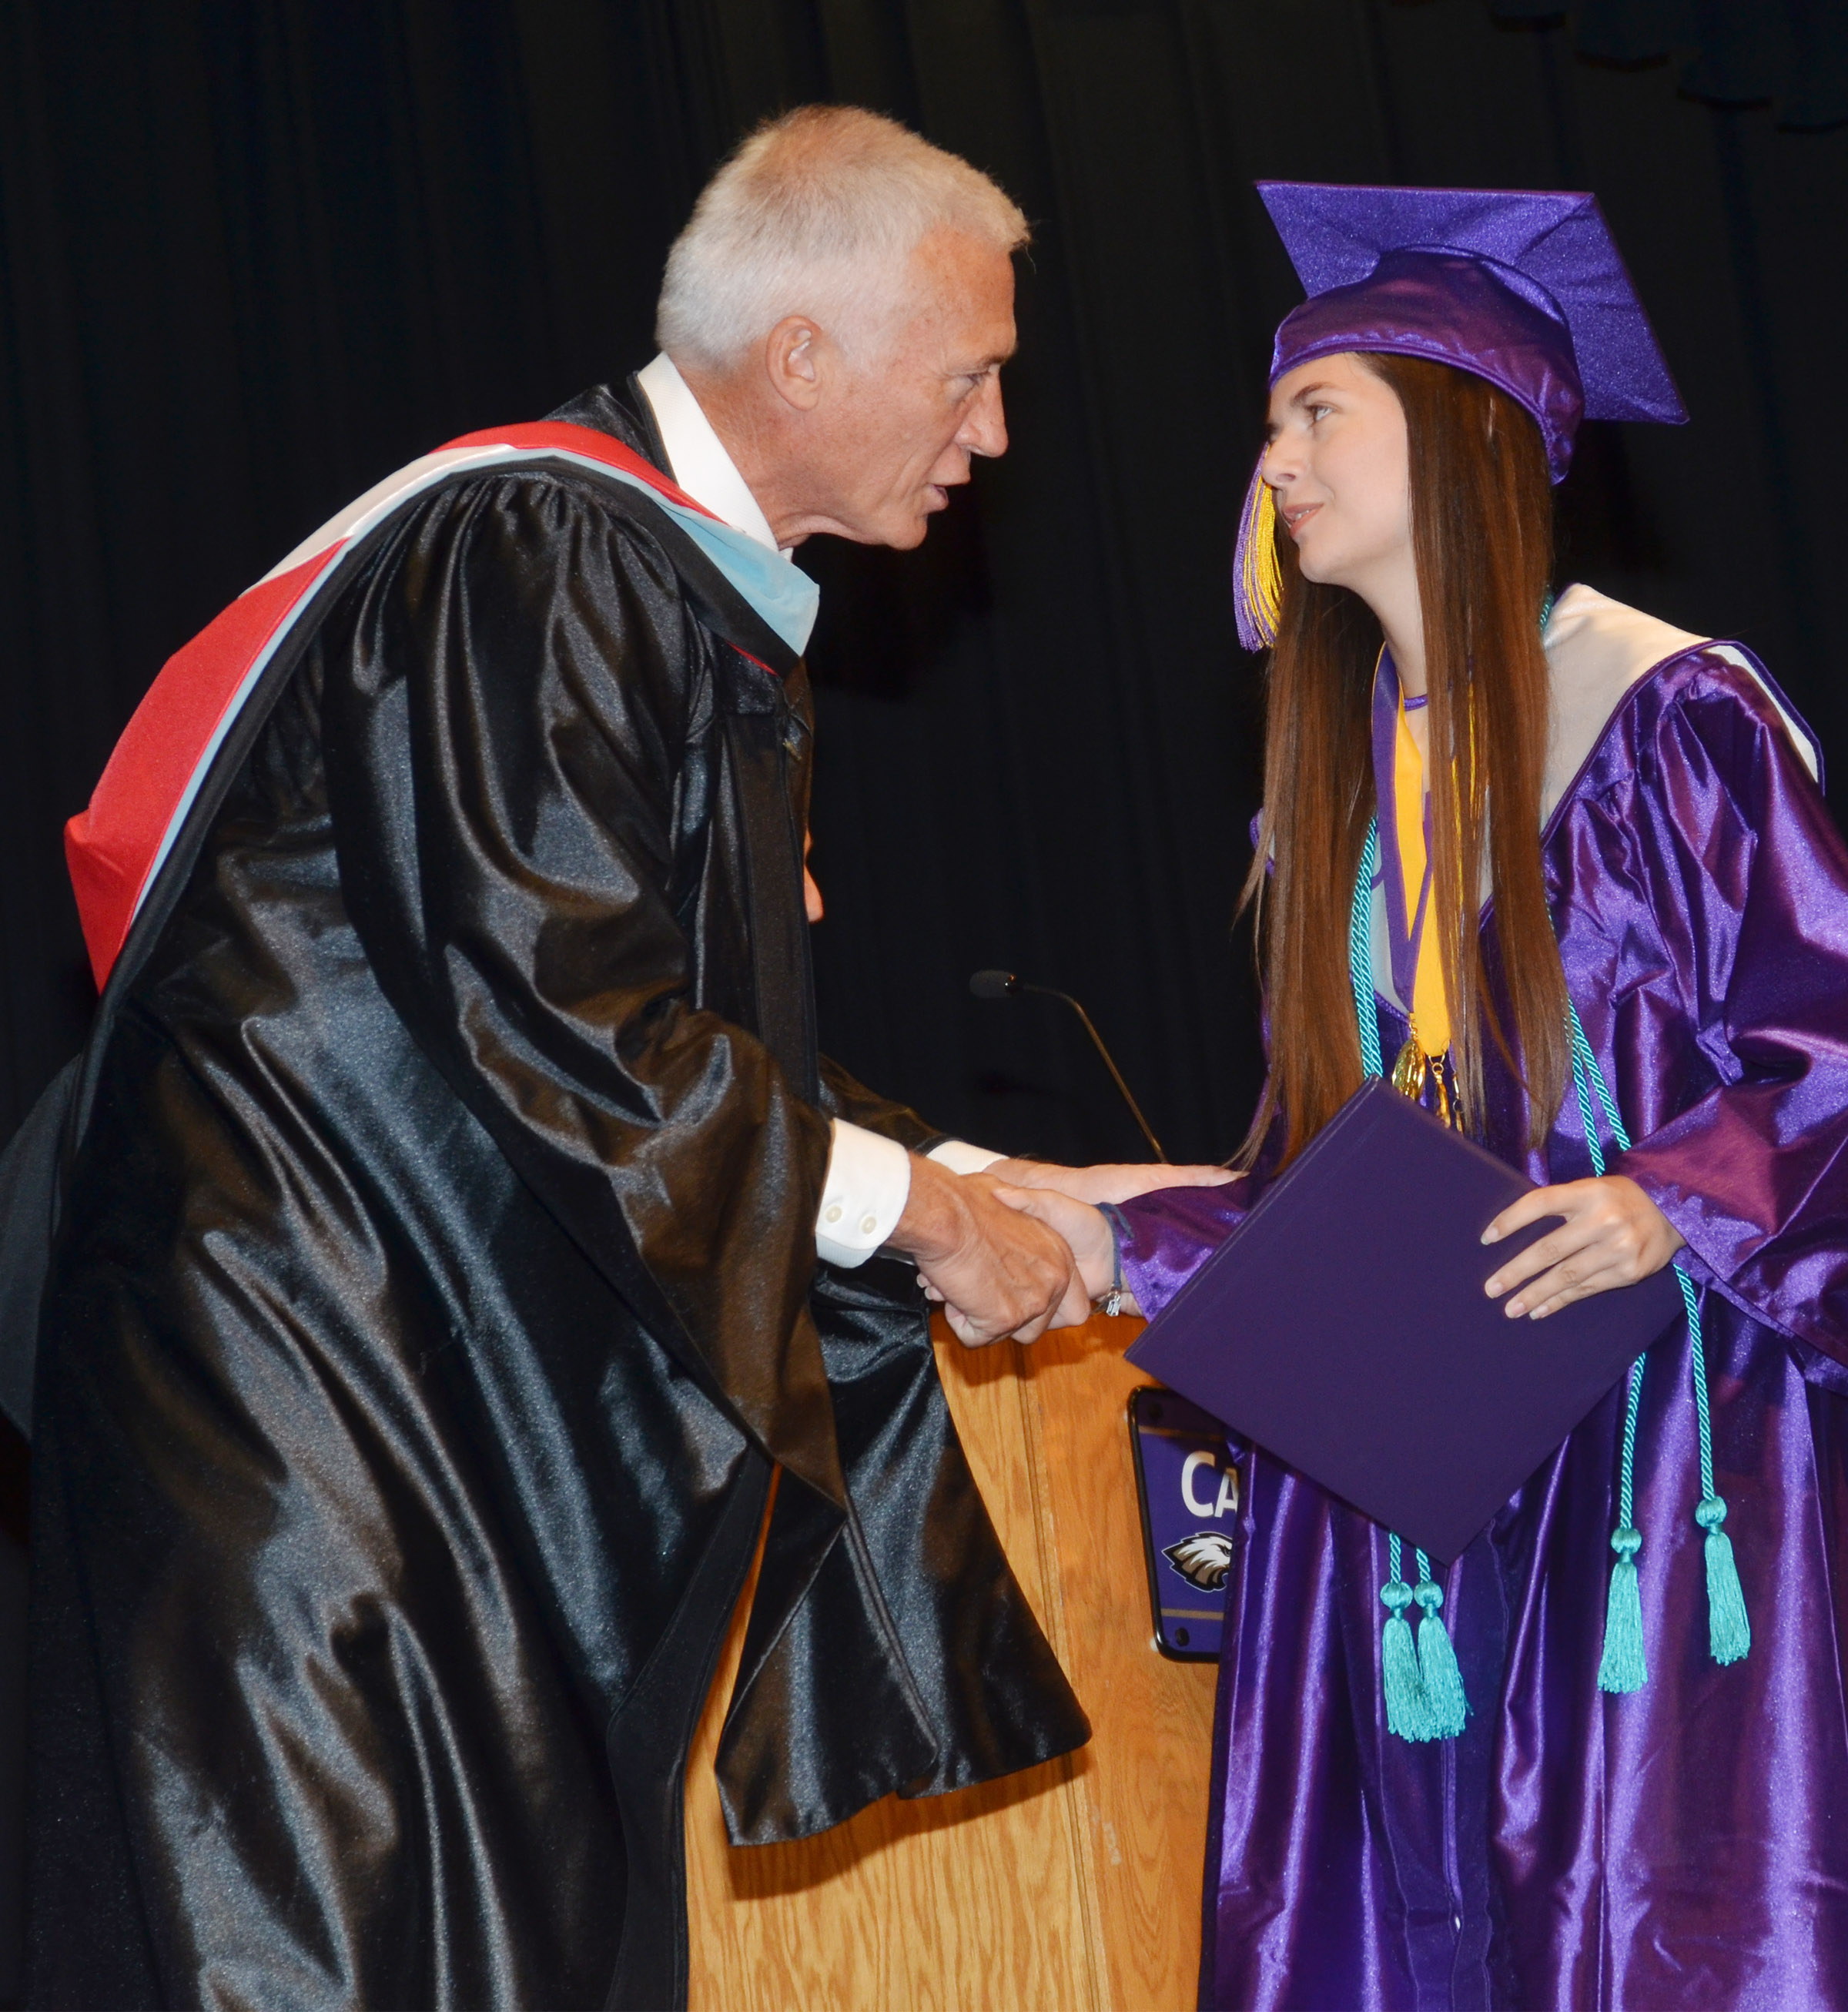 Campbellsville Independent Schools Superintendent Mike Deaton congratulates Shauna Jones.